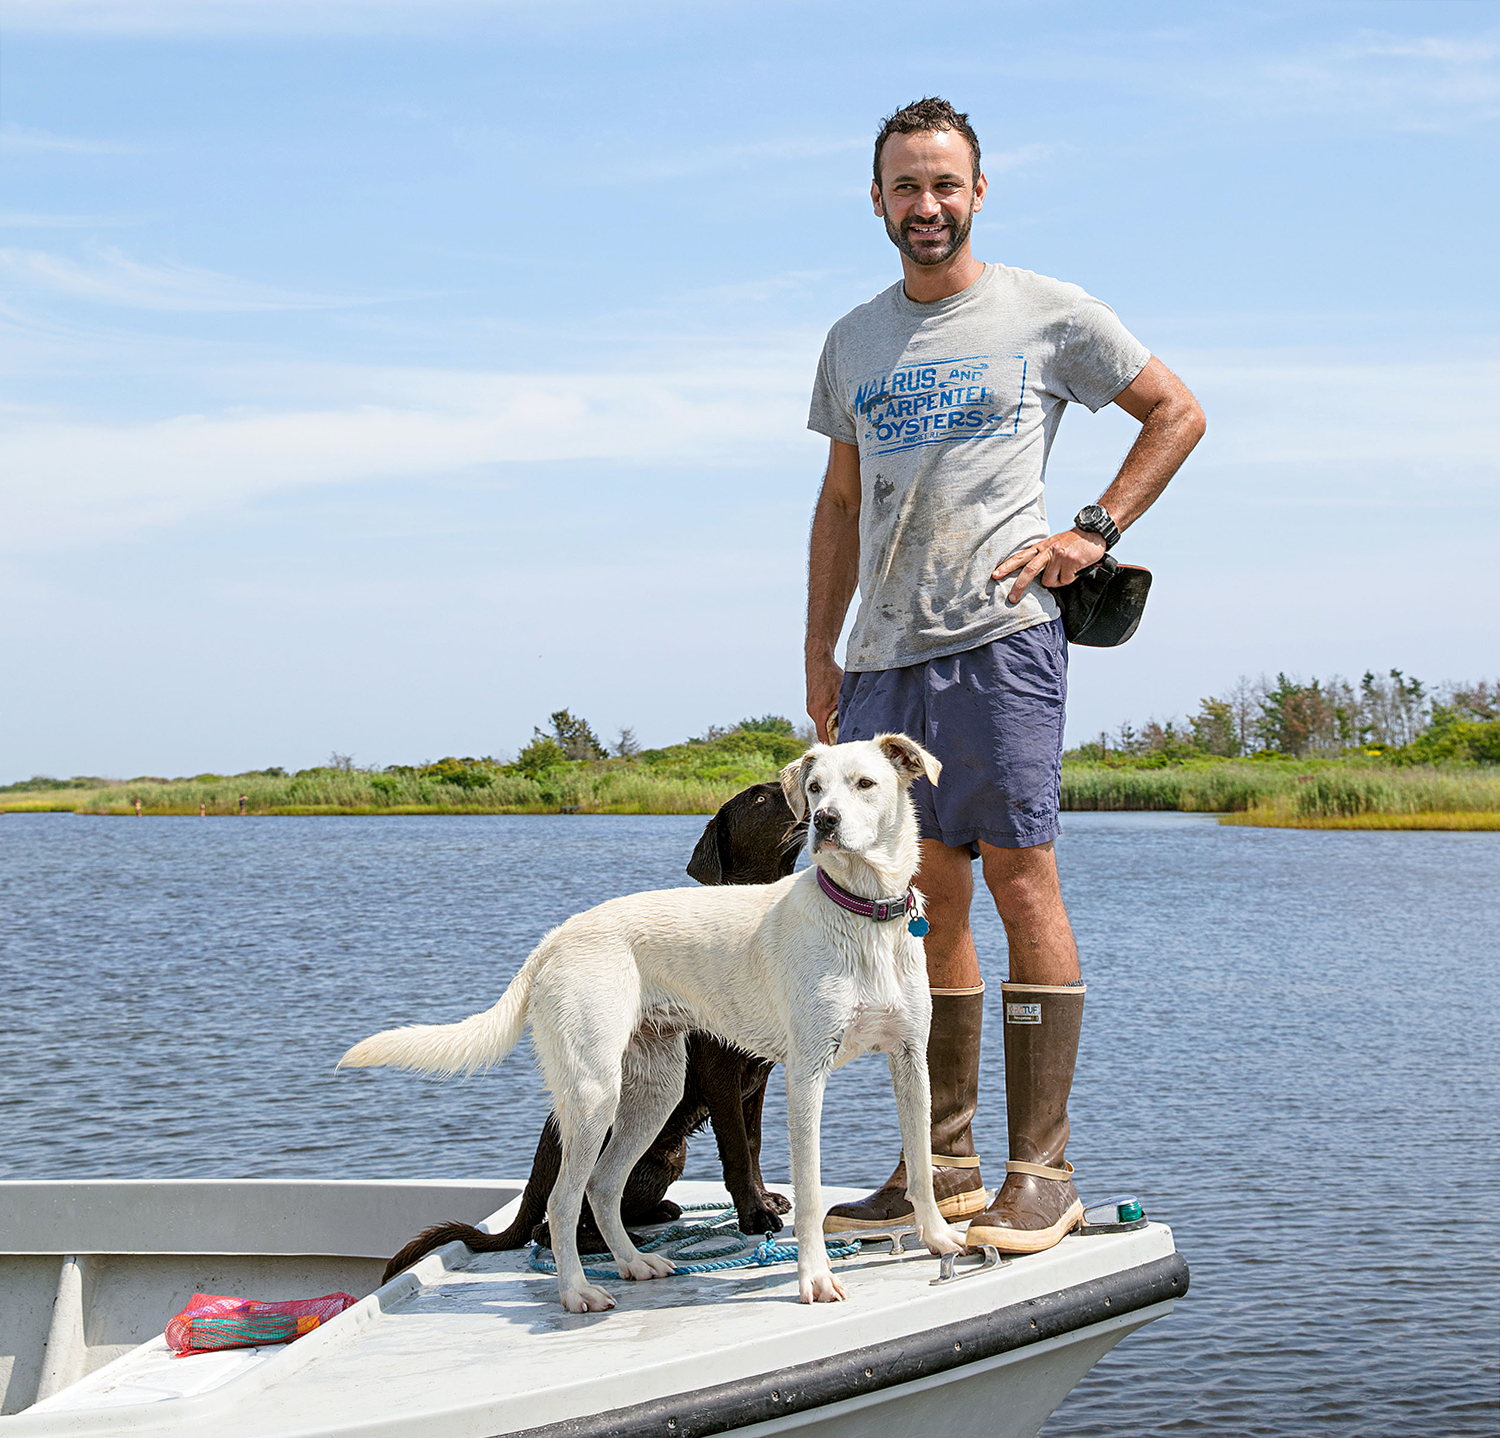 owner of oyster company on boat with dogs